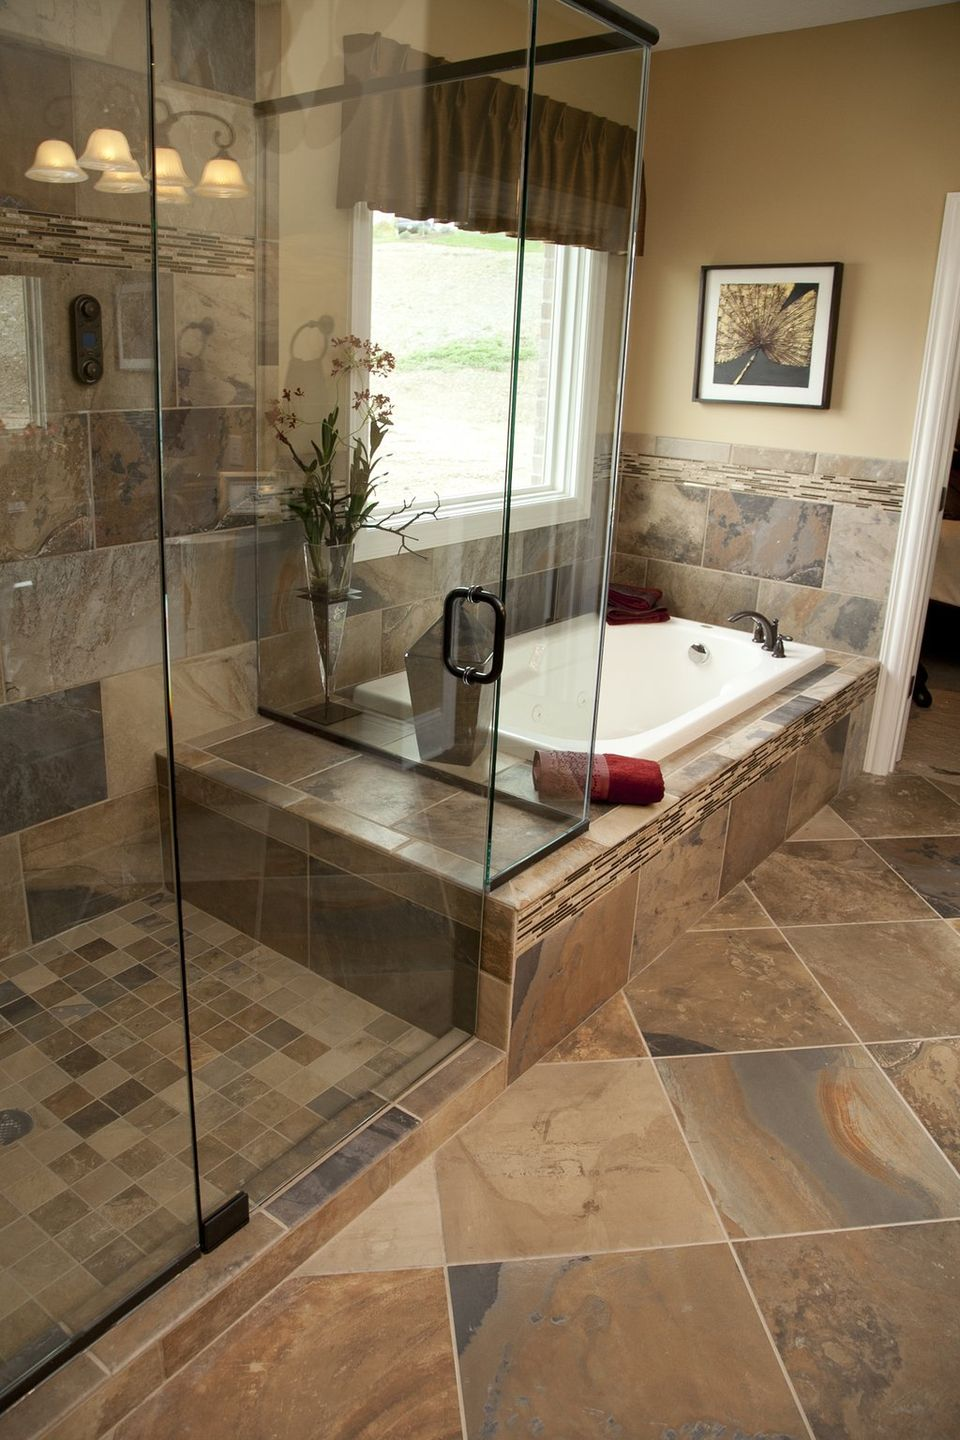 33 stunning pictures and ideas of natural stone bathroom for Bathroom tile design ideas